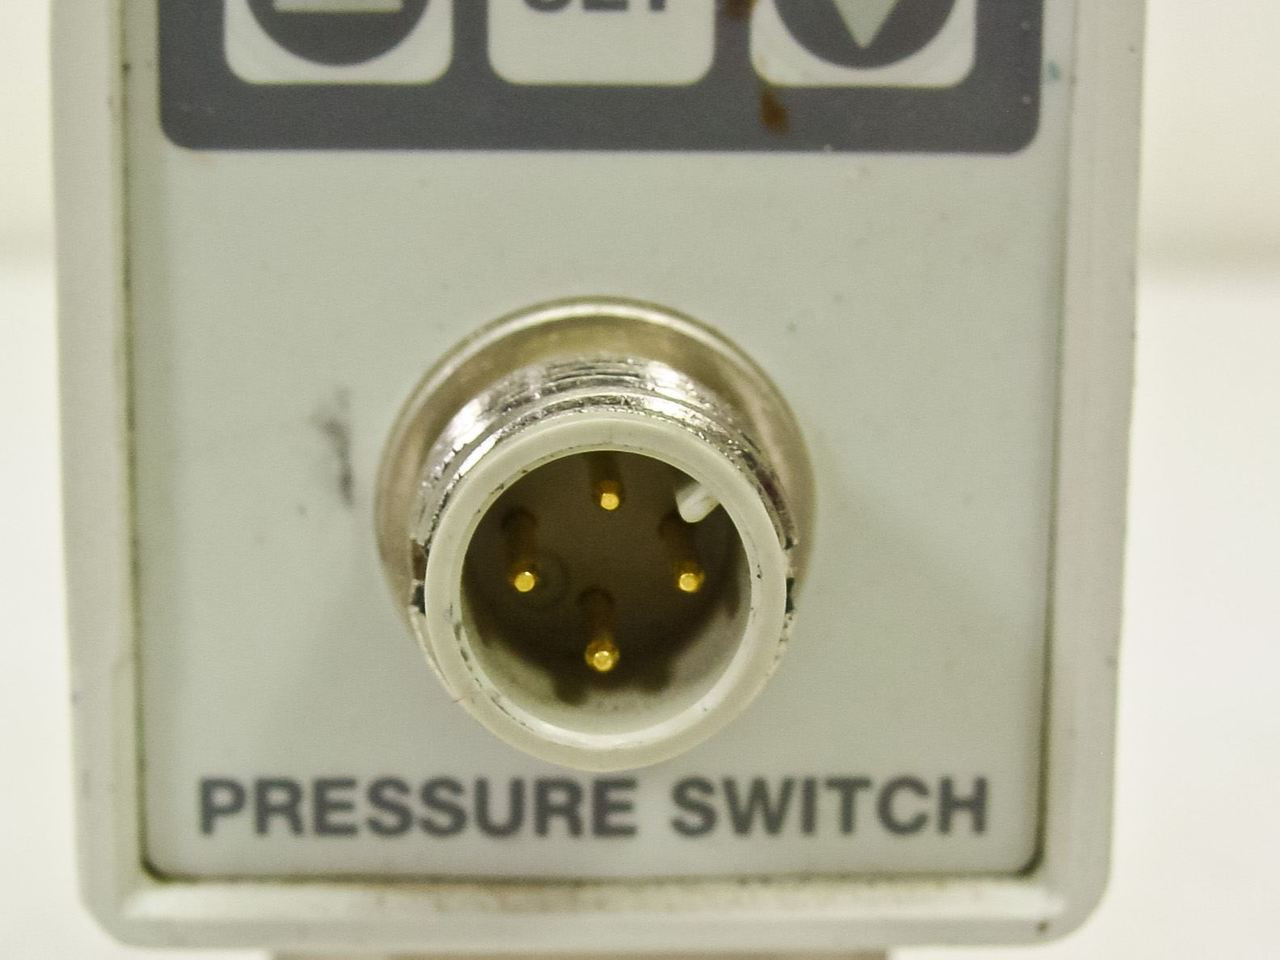 smc pressure switch ise70 manual